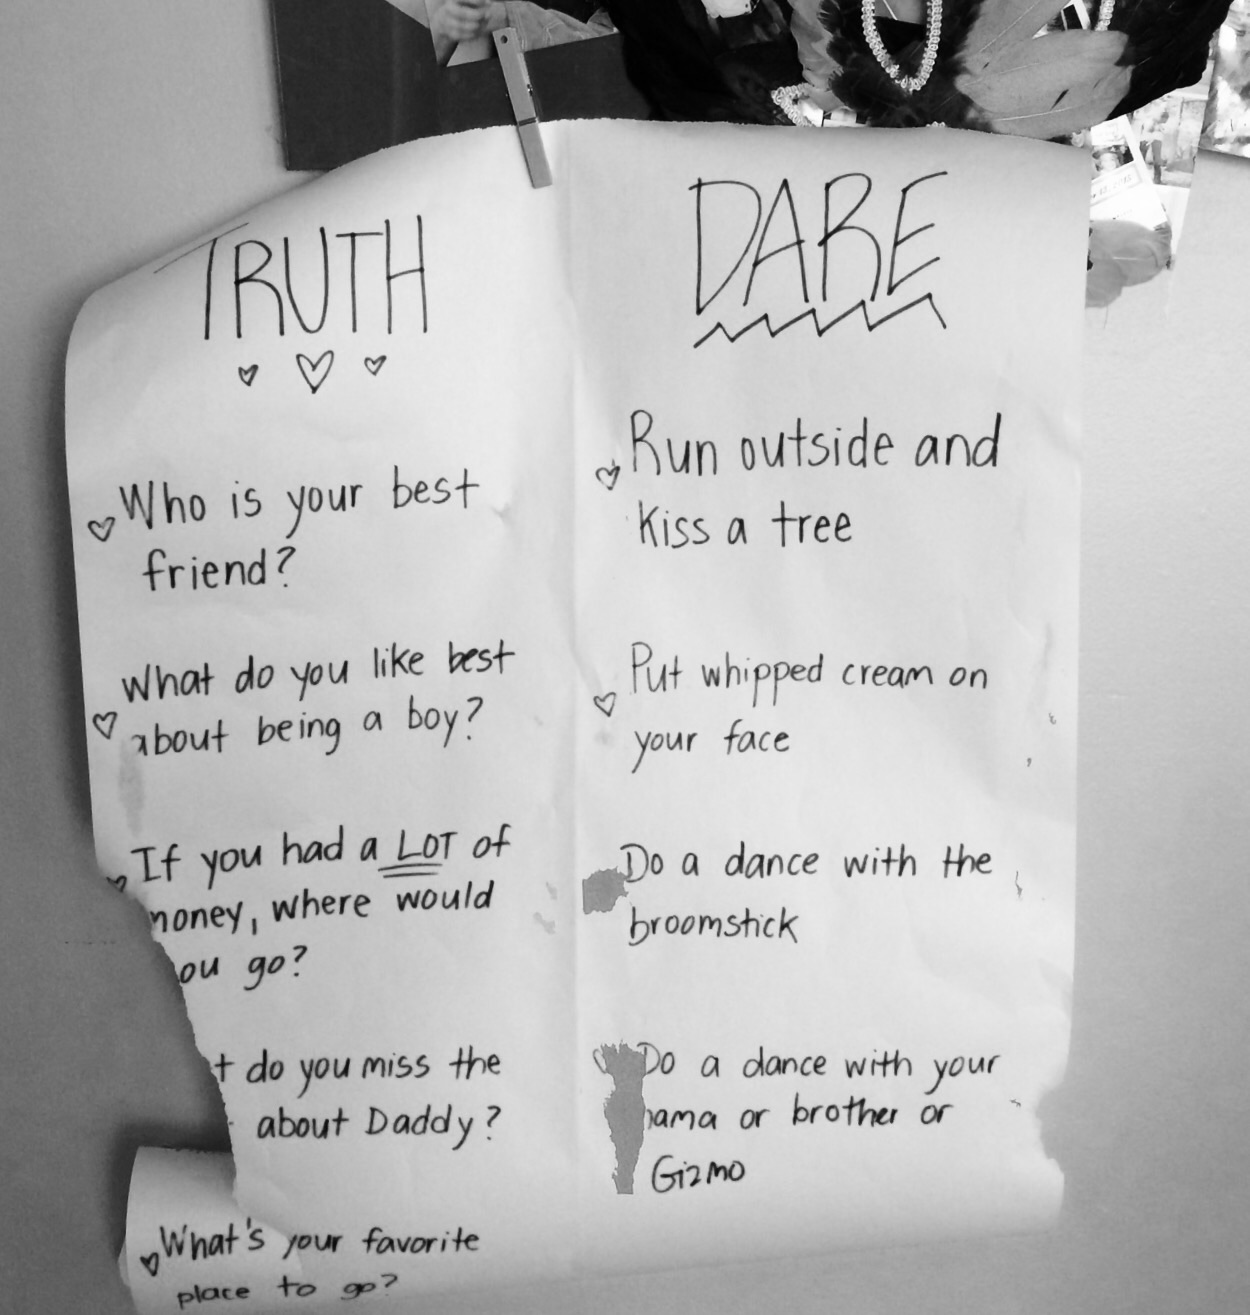 Easy dares for truth or dare